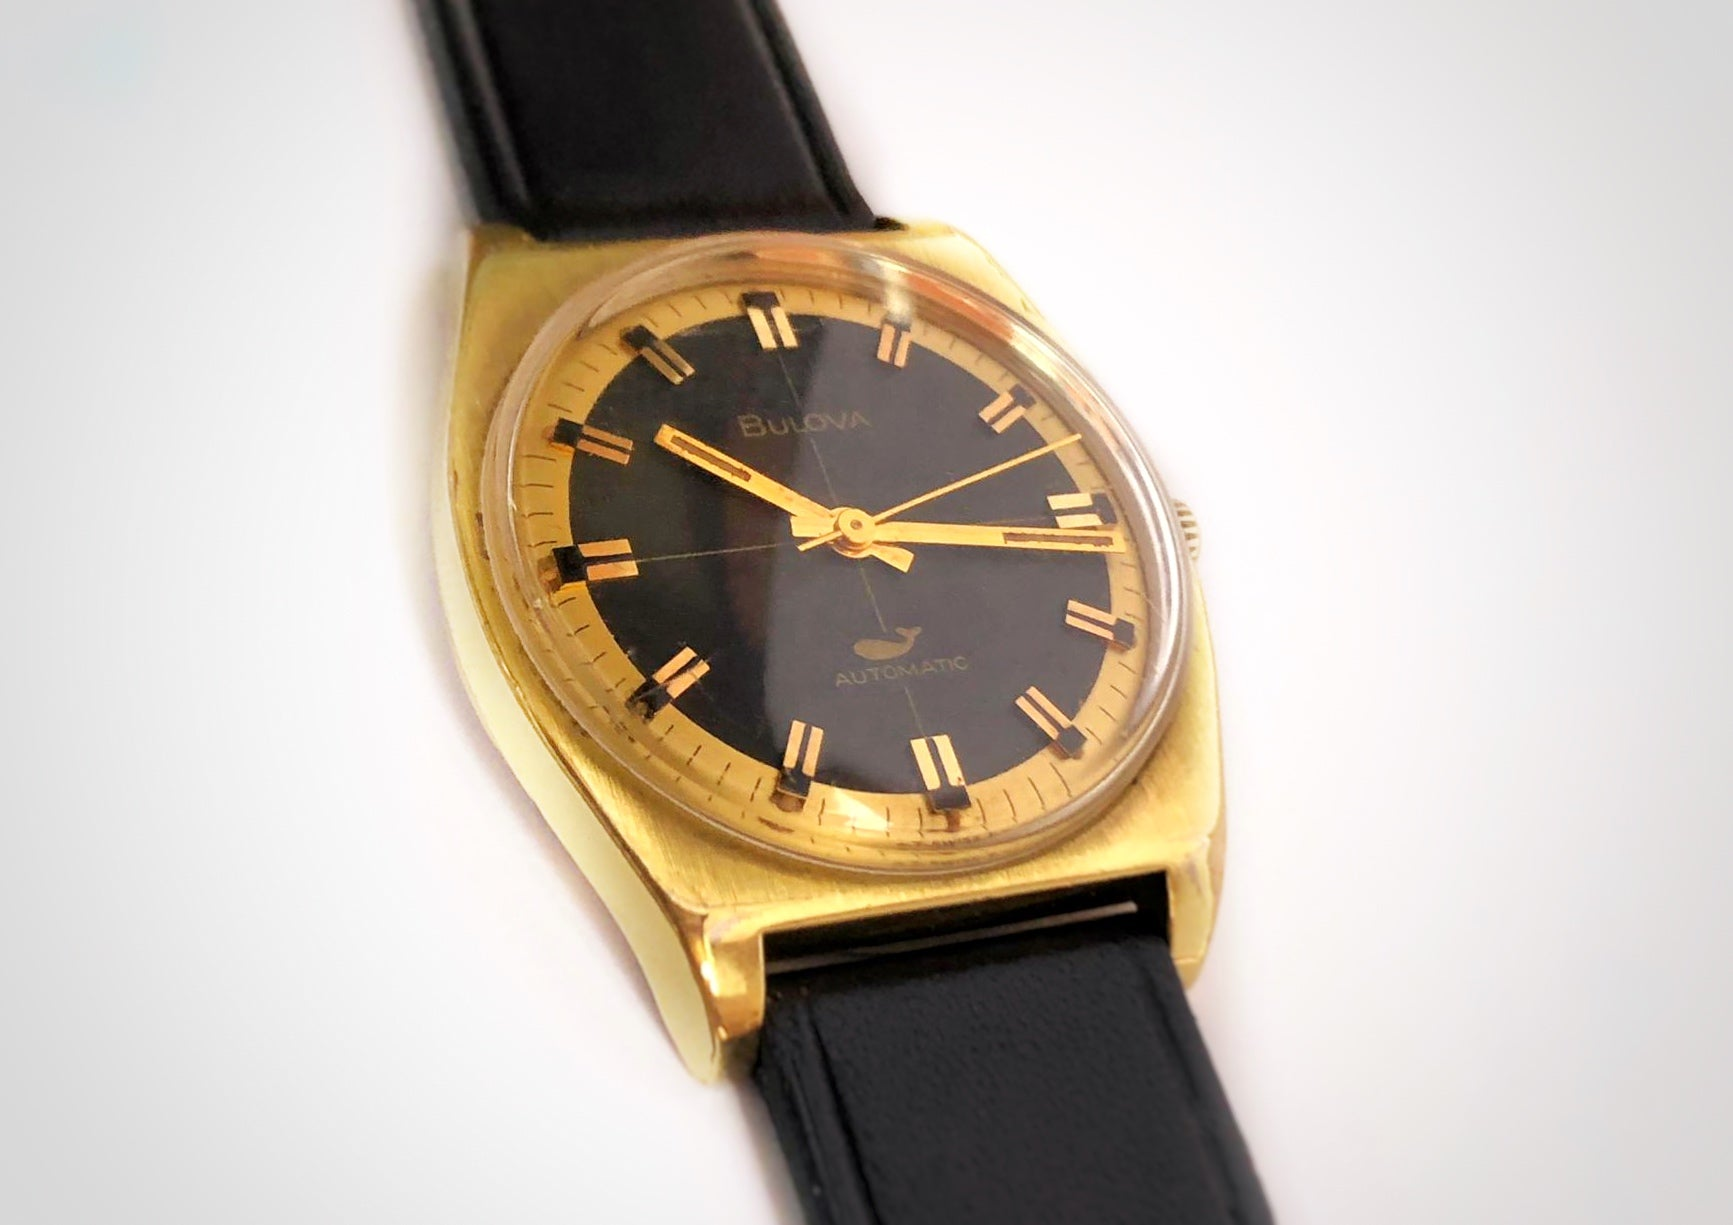 Three quarters view of Gold and black vintage luxury dive watch with stick hands and sweep seconds made by Bulova